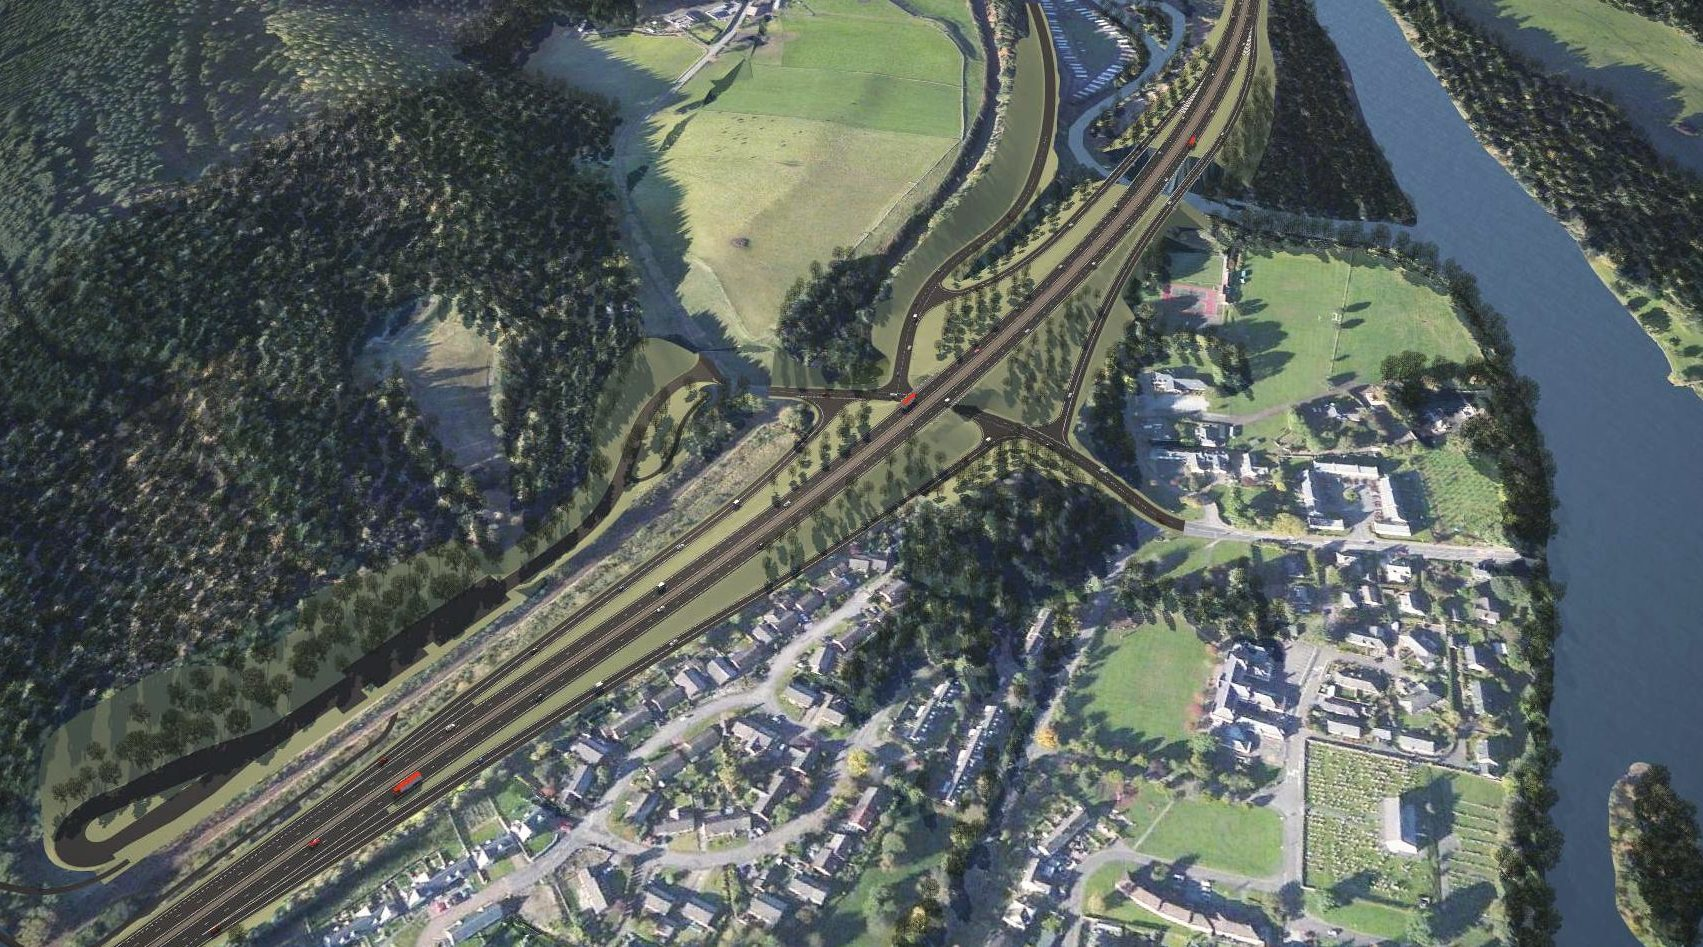 One of the options for the Pass of Birnam to Tay Crossing section of the A9 dualling